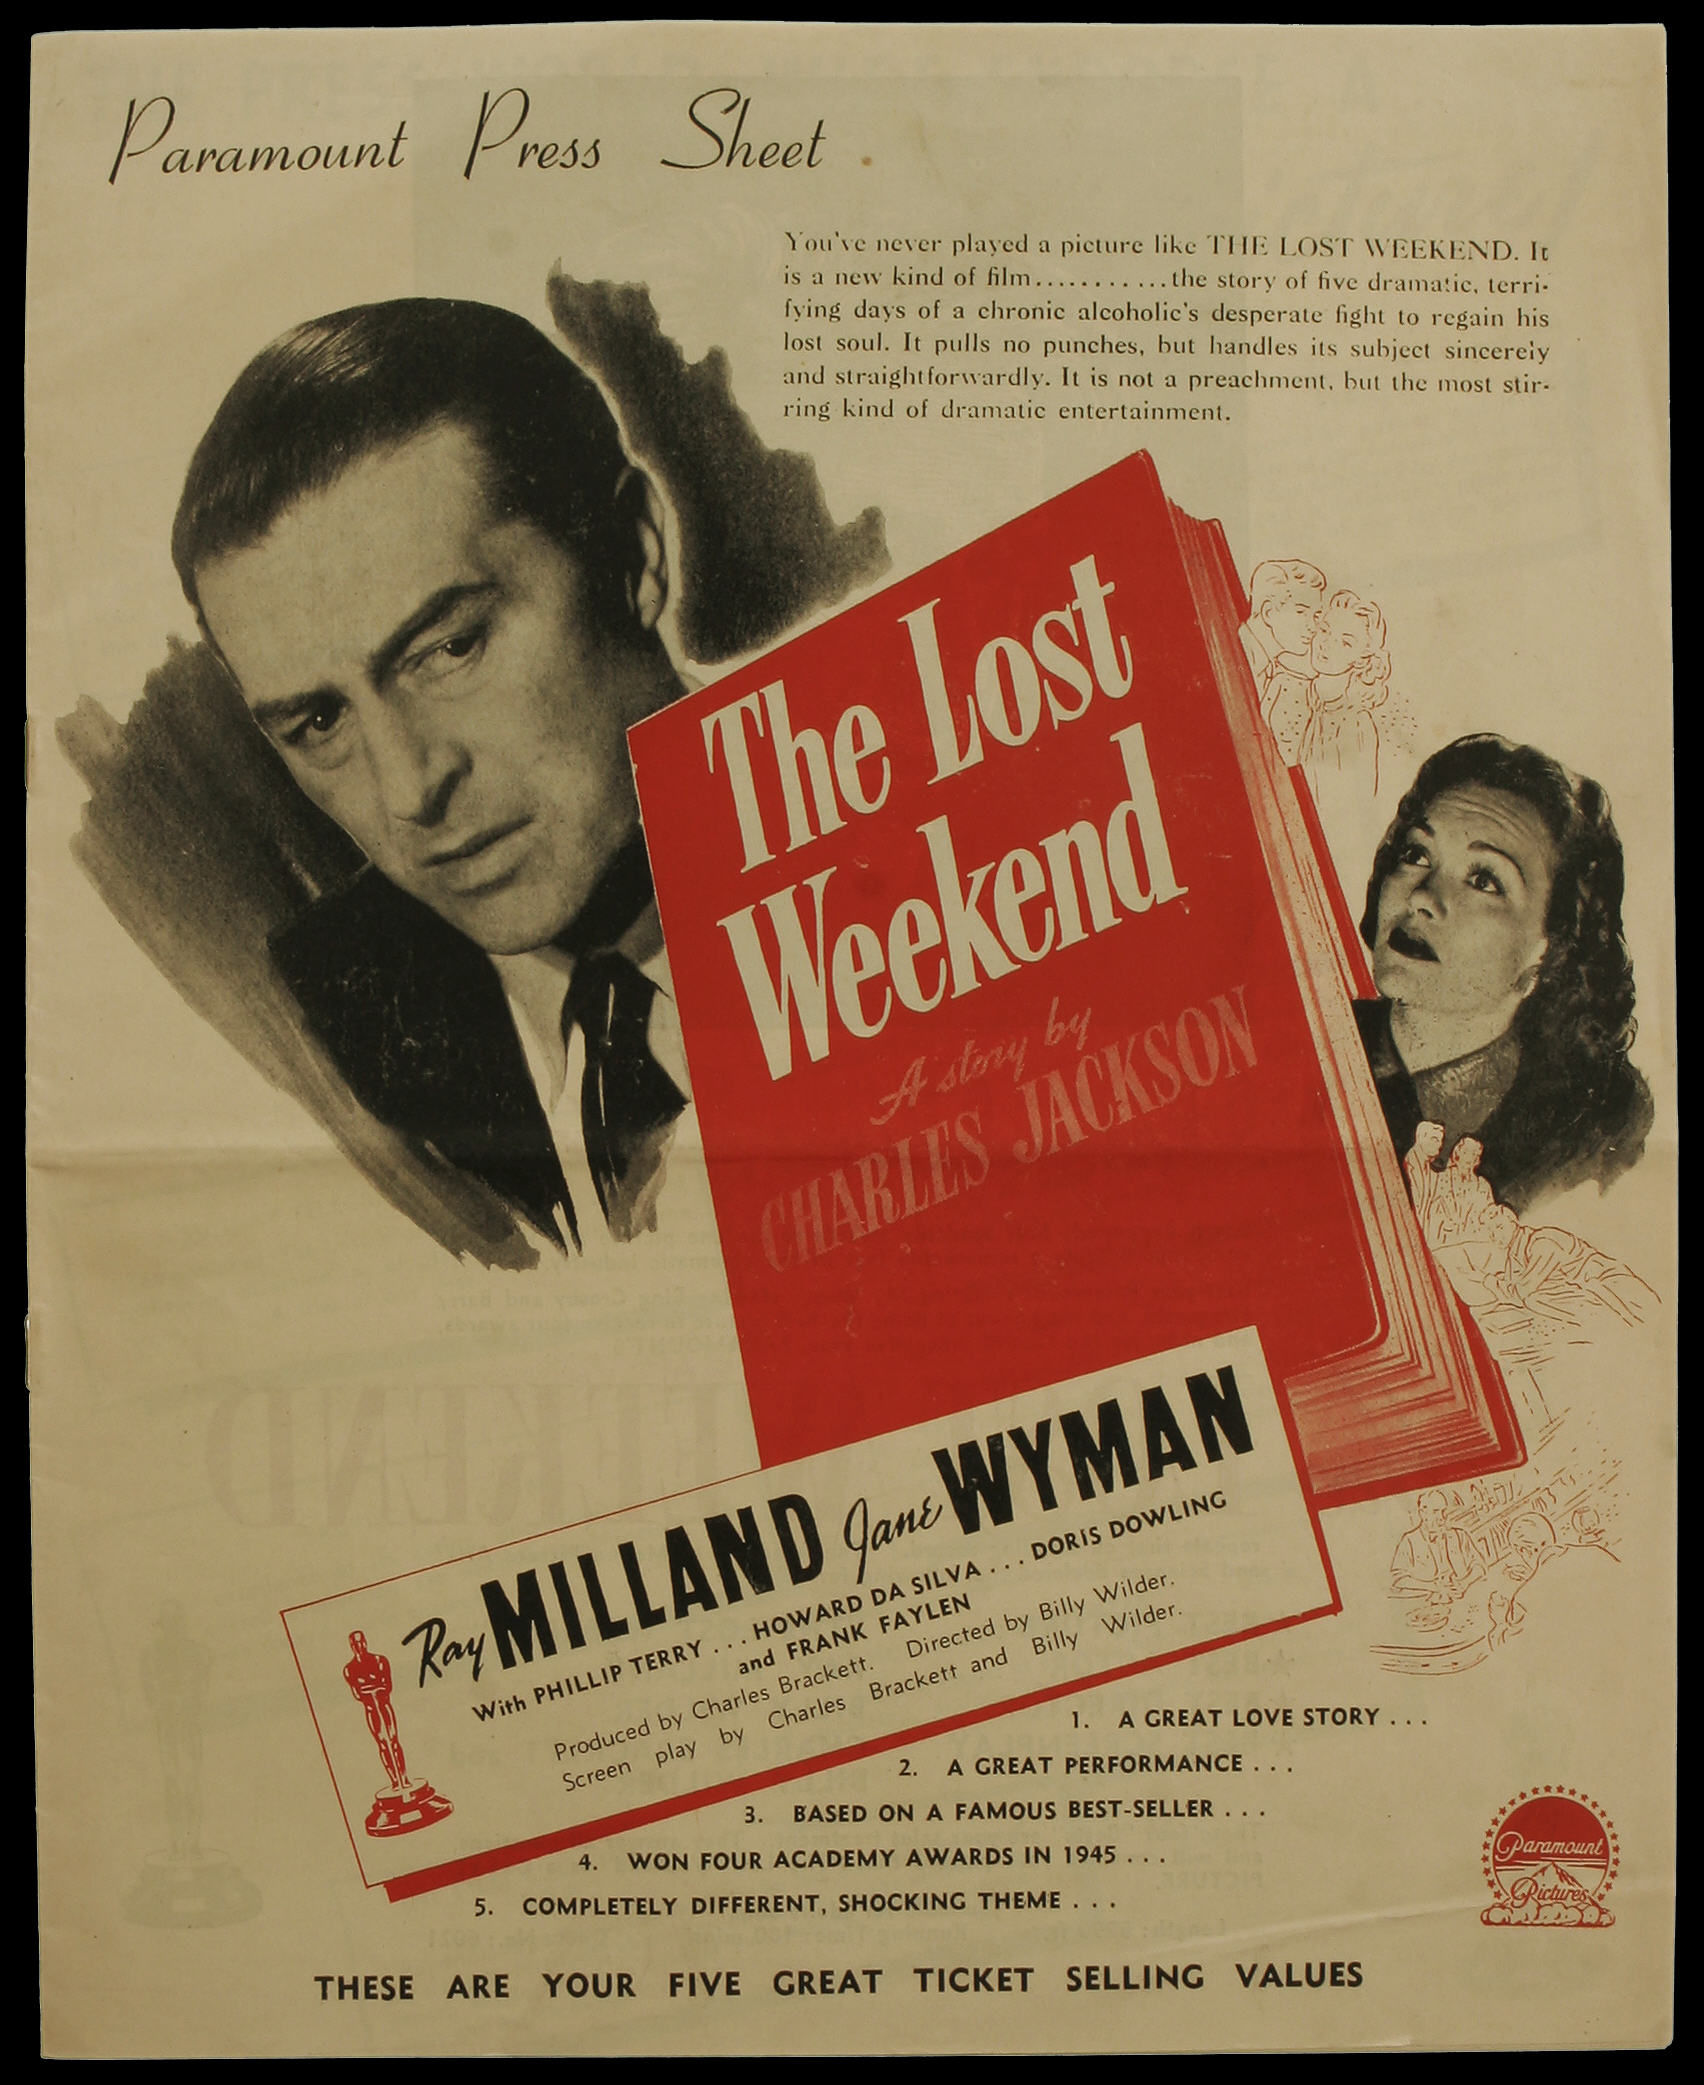 Ray Milland and Jane Wyman in The Lost Weekend (1945)